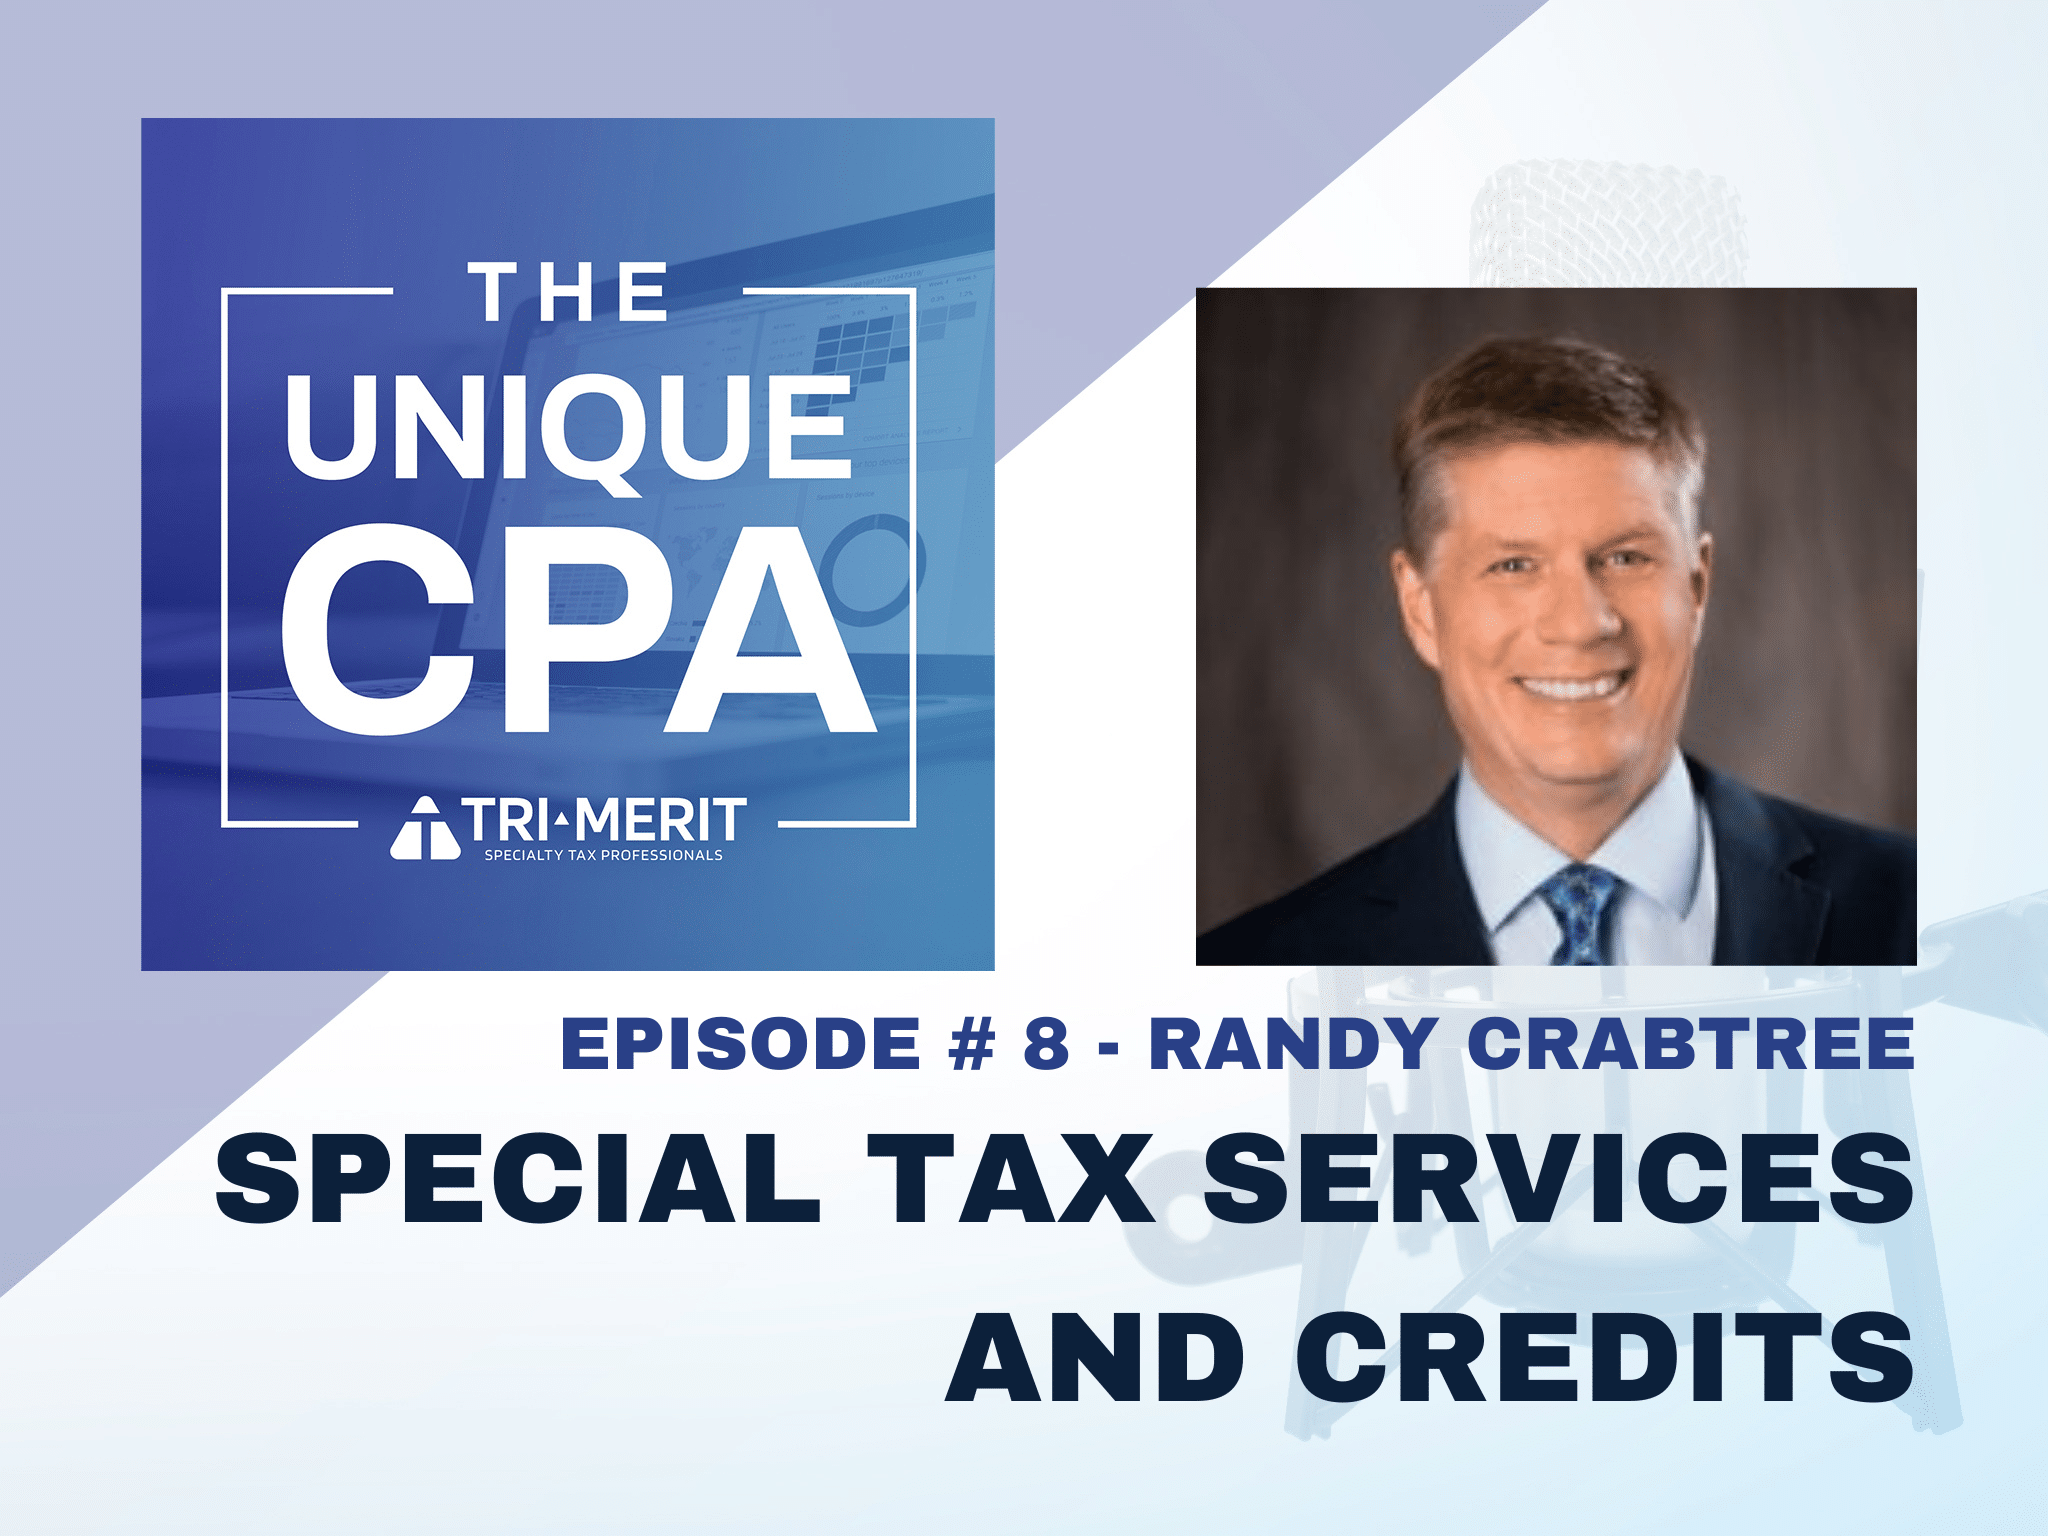 The Unique CPA Feature Image Ep 8 - Special Tax Services and Credits - Tri-Merit